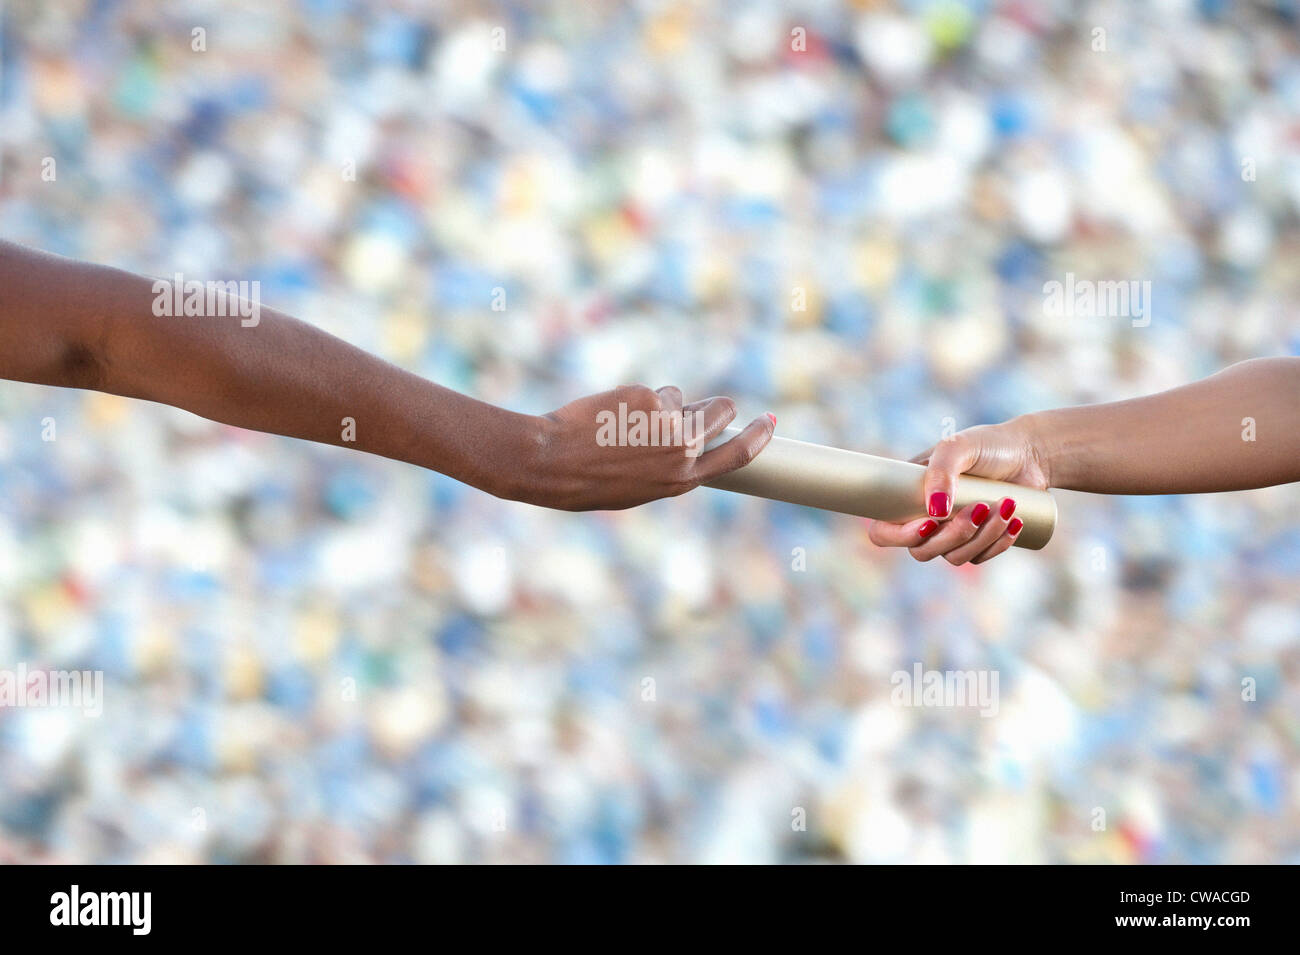 Relay athletes passing a baton, close up - Stock Image